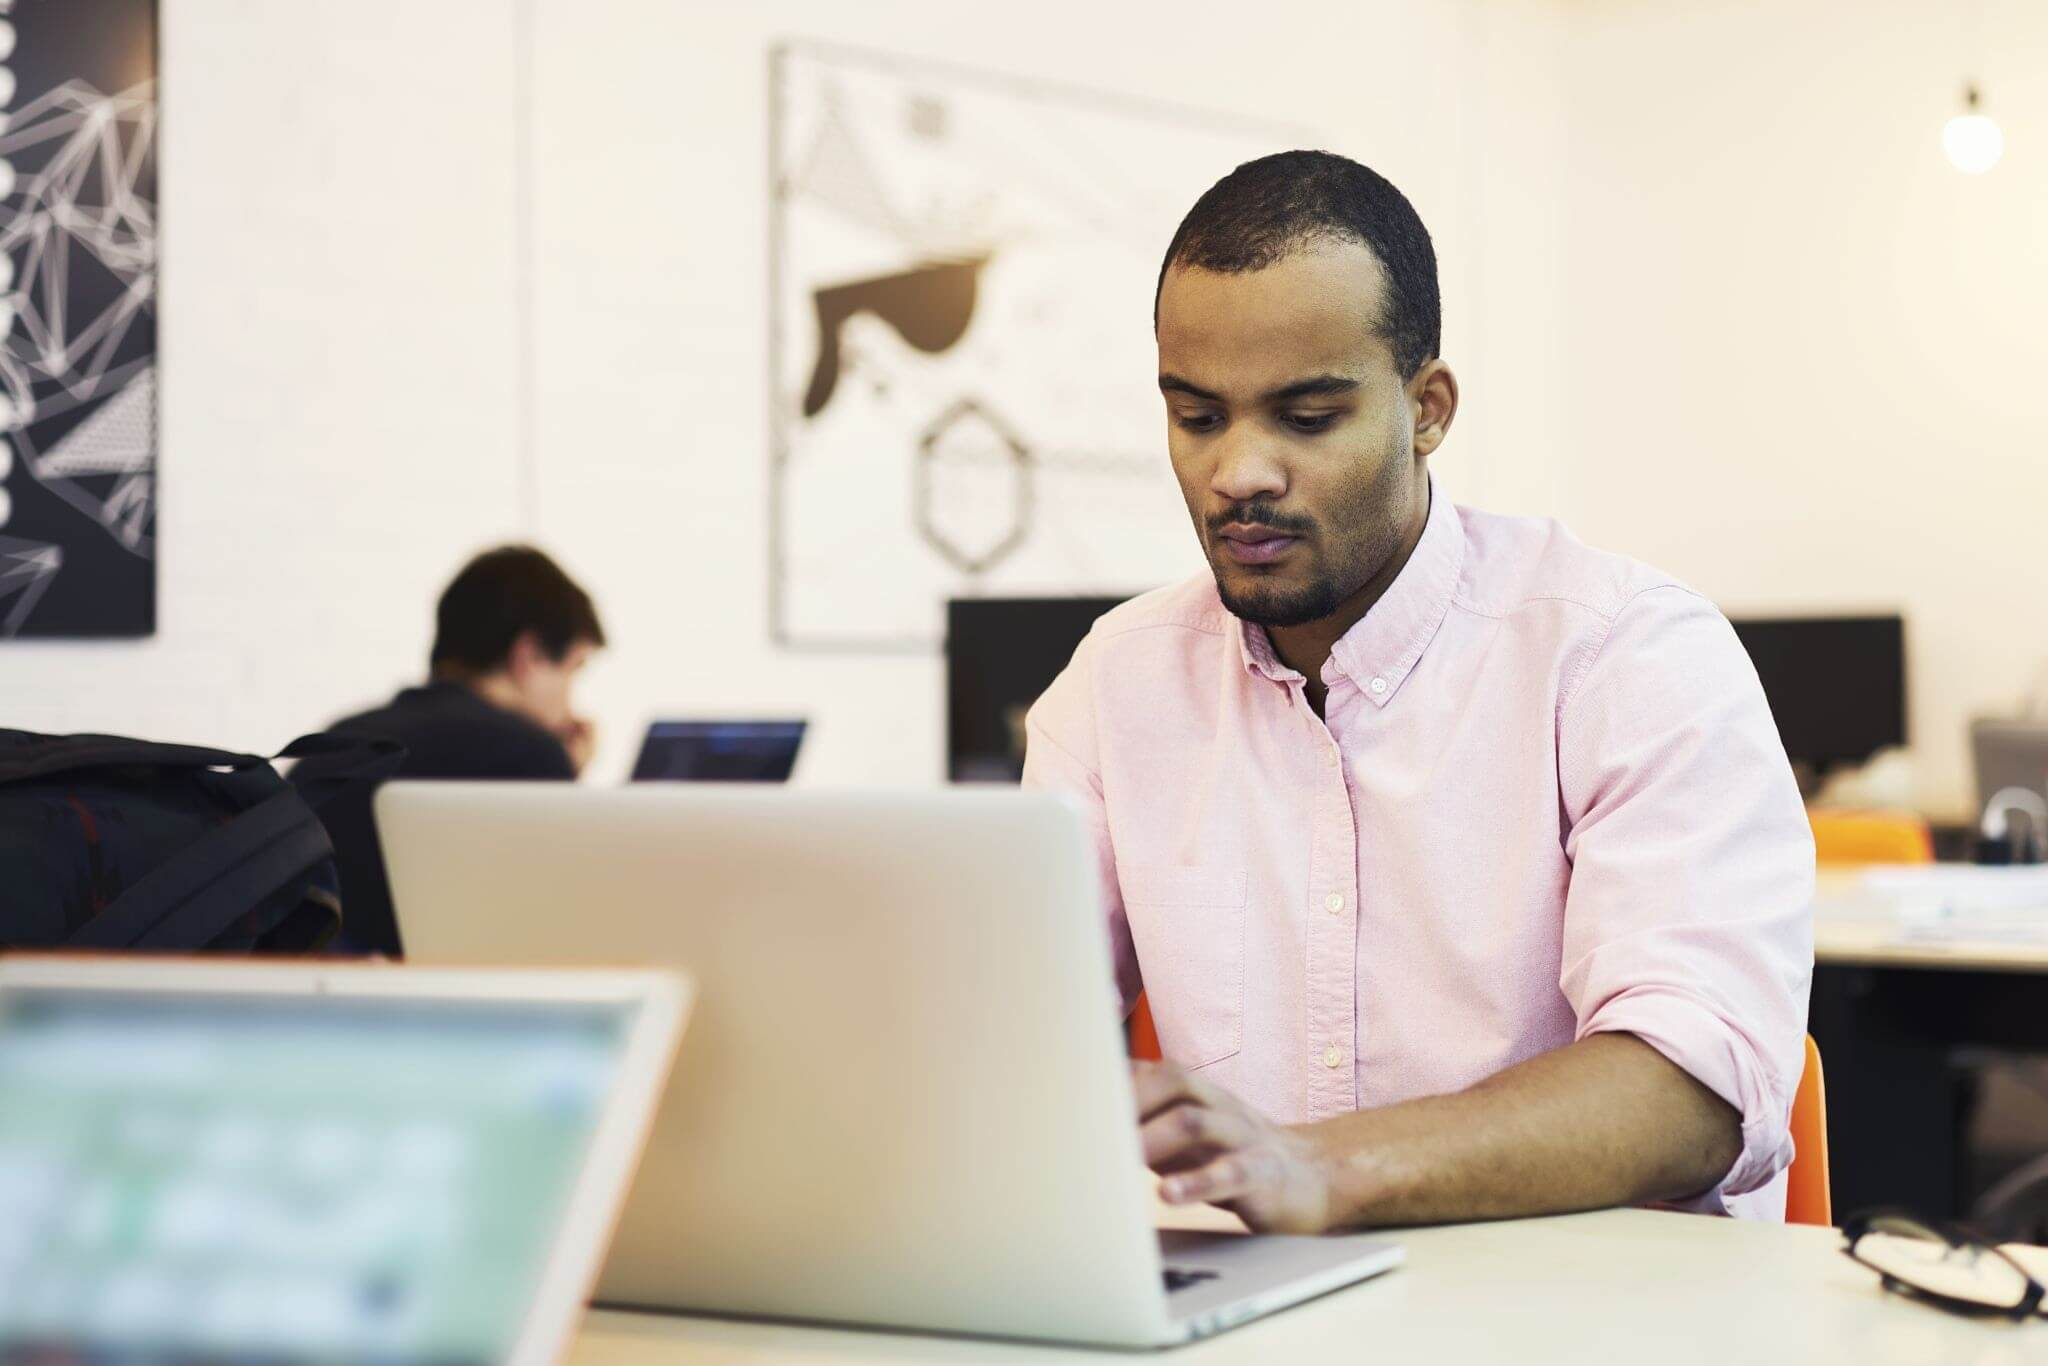 Man in office typing on laptop